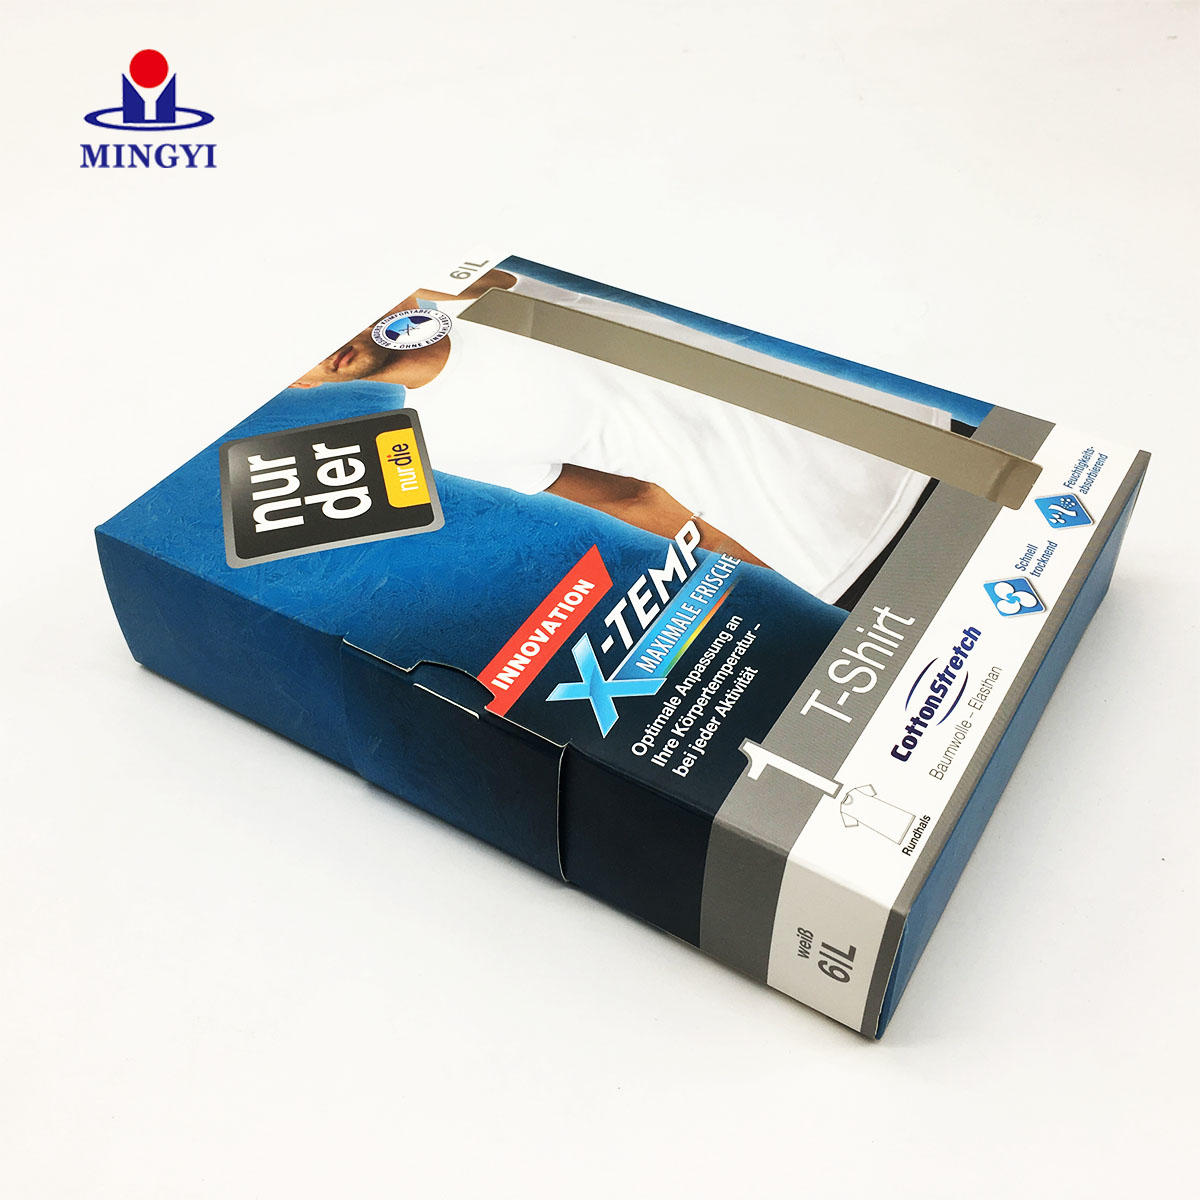 New customized famous brand T-shirt packaging box with PVC window